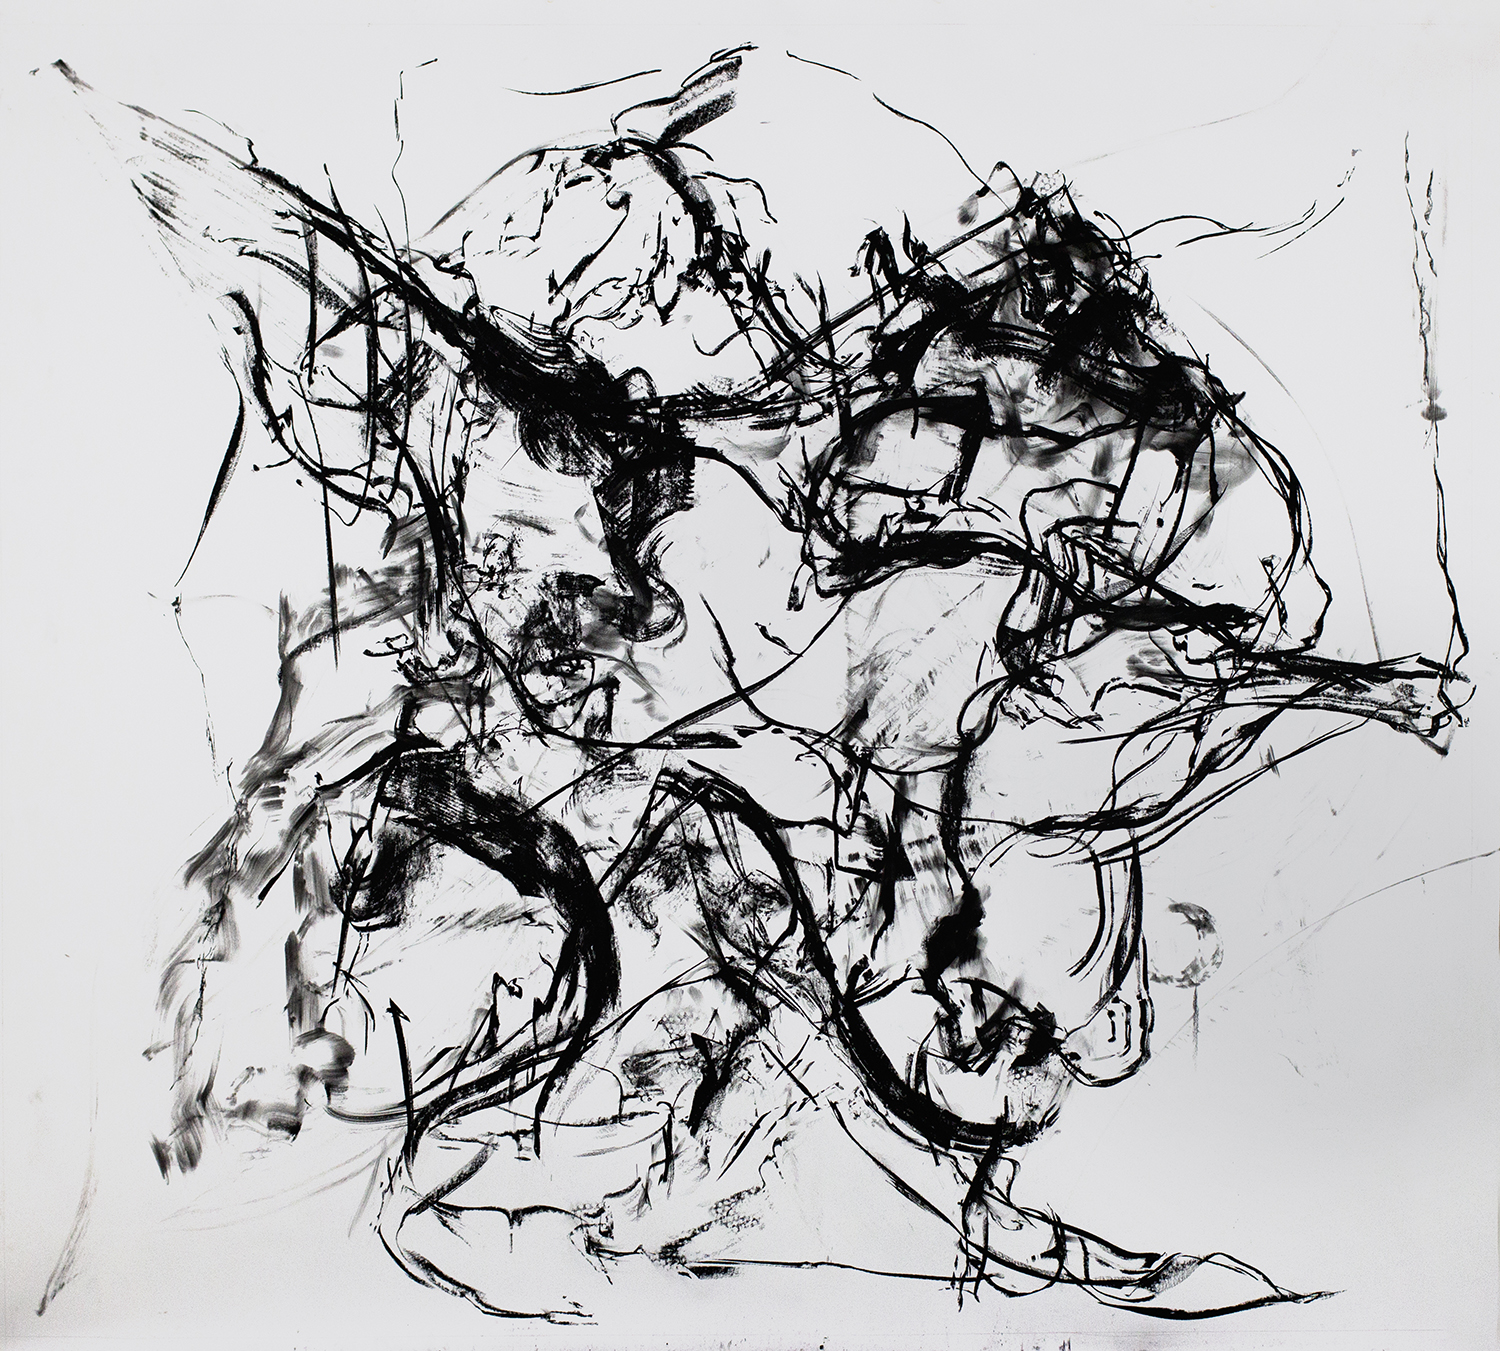 Untitled, 2016, Charcoal on paper, 96 x 120 in.